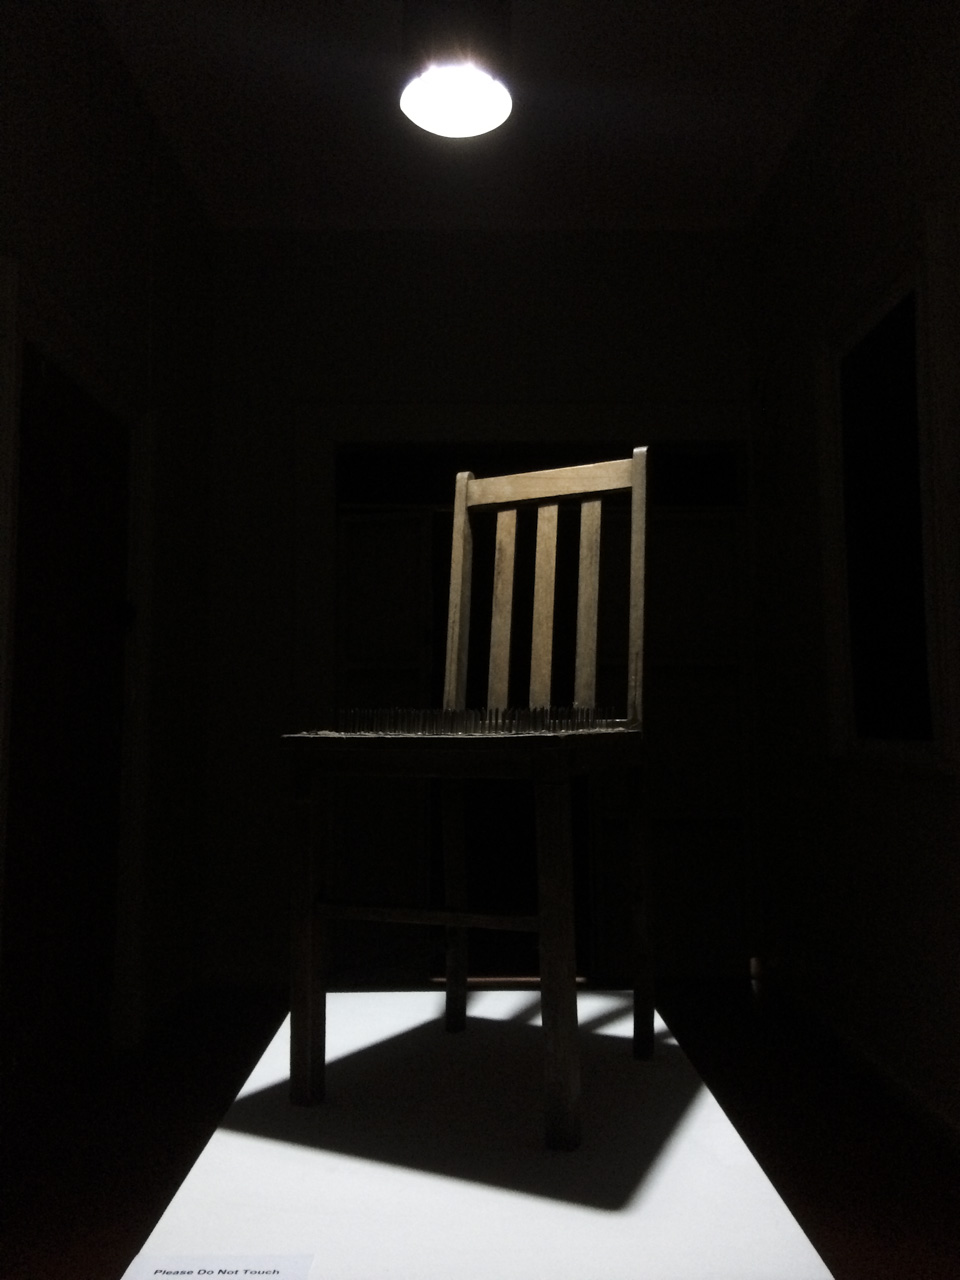 Photographs and Isolation Chair of Nails Ballarat Convent Aldona Kmiec art